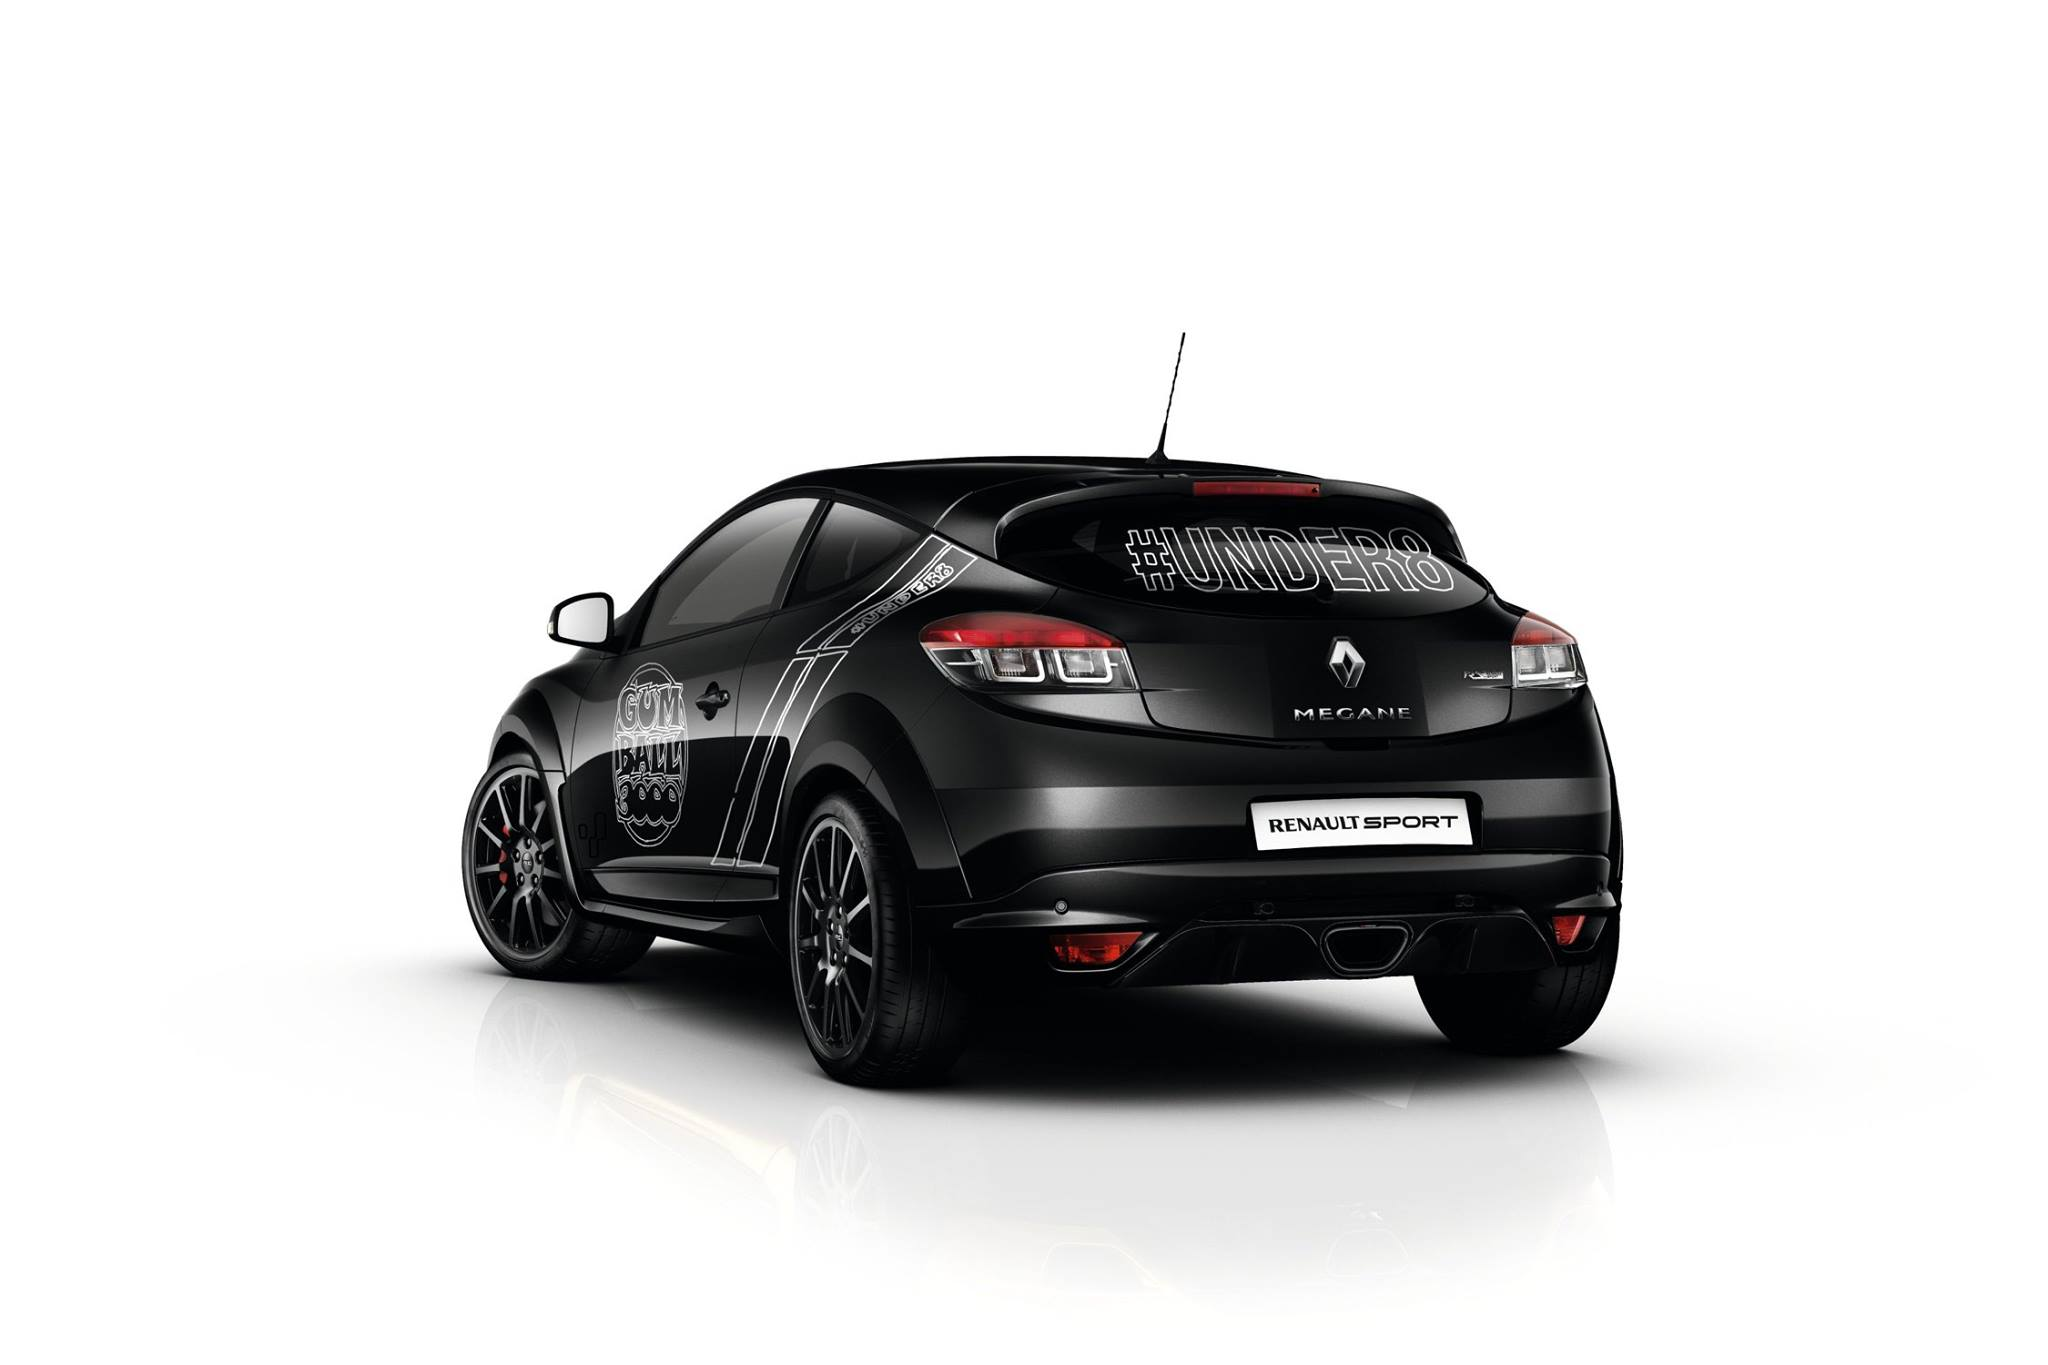 la renault megane rs trophy v tue de noir au gumball 3000. Black Bedroom Furniture Sets. Home Design Ideas